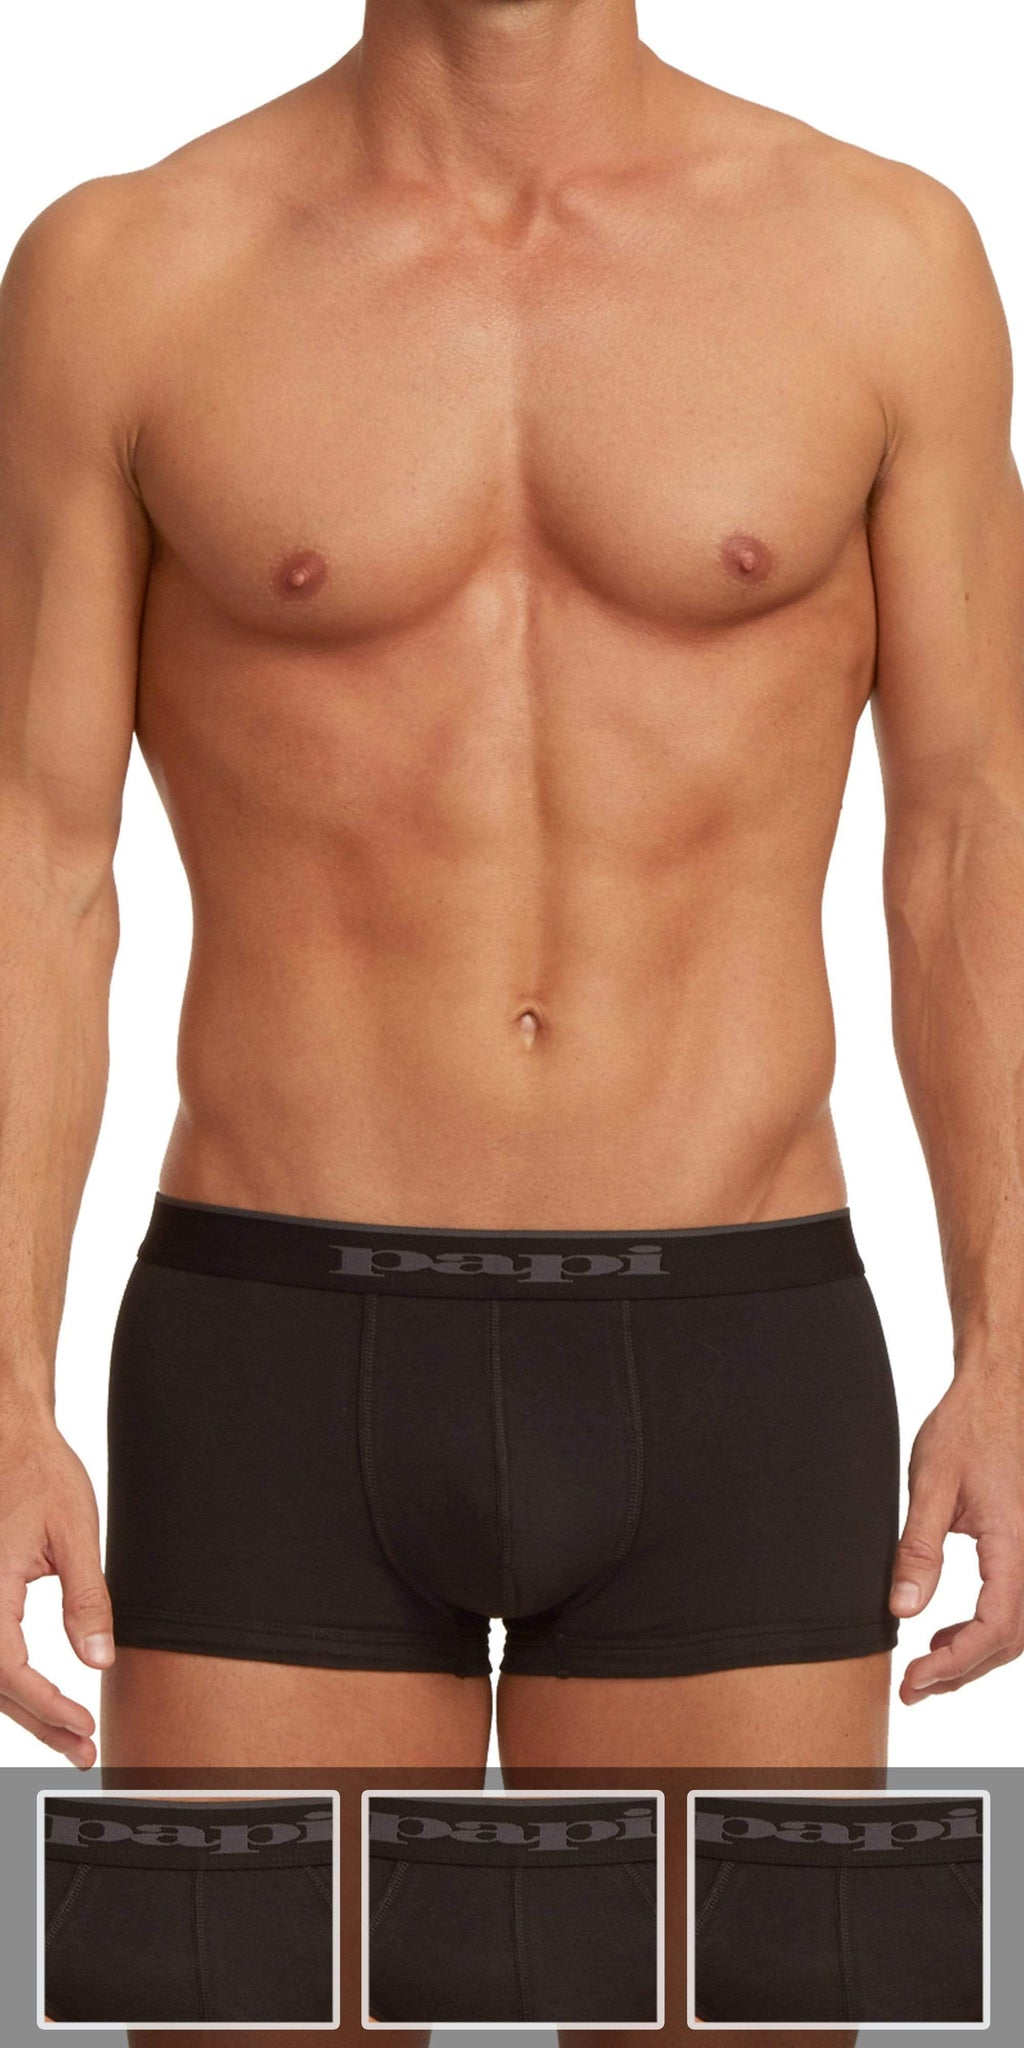 Papi 3-Pack Cotton Stretch Brazilian Solids Trunk In Black